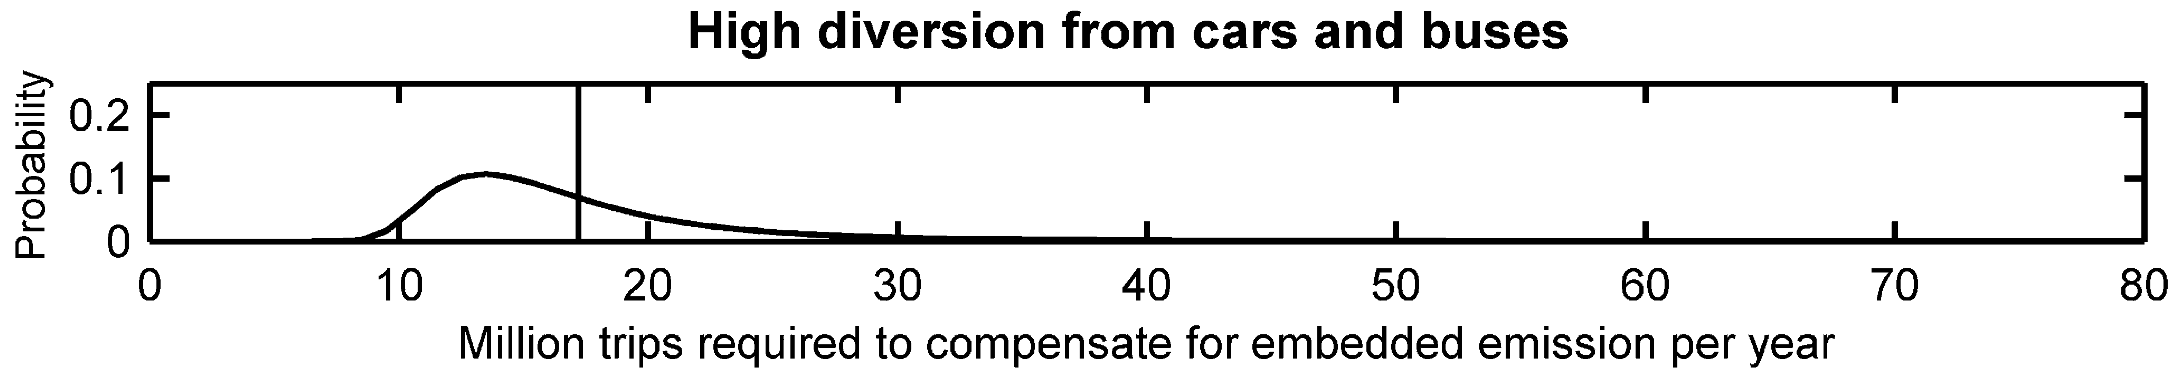 A graph titled 'High diversion from cars and buses'. The x-axis is labeled 'Million trips required to compensate for embedded emissions each year'. The y-axis is labeled 'probability'. The graph shows a probability distribution, skewed moderately right with a mean at around 17 million.